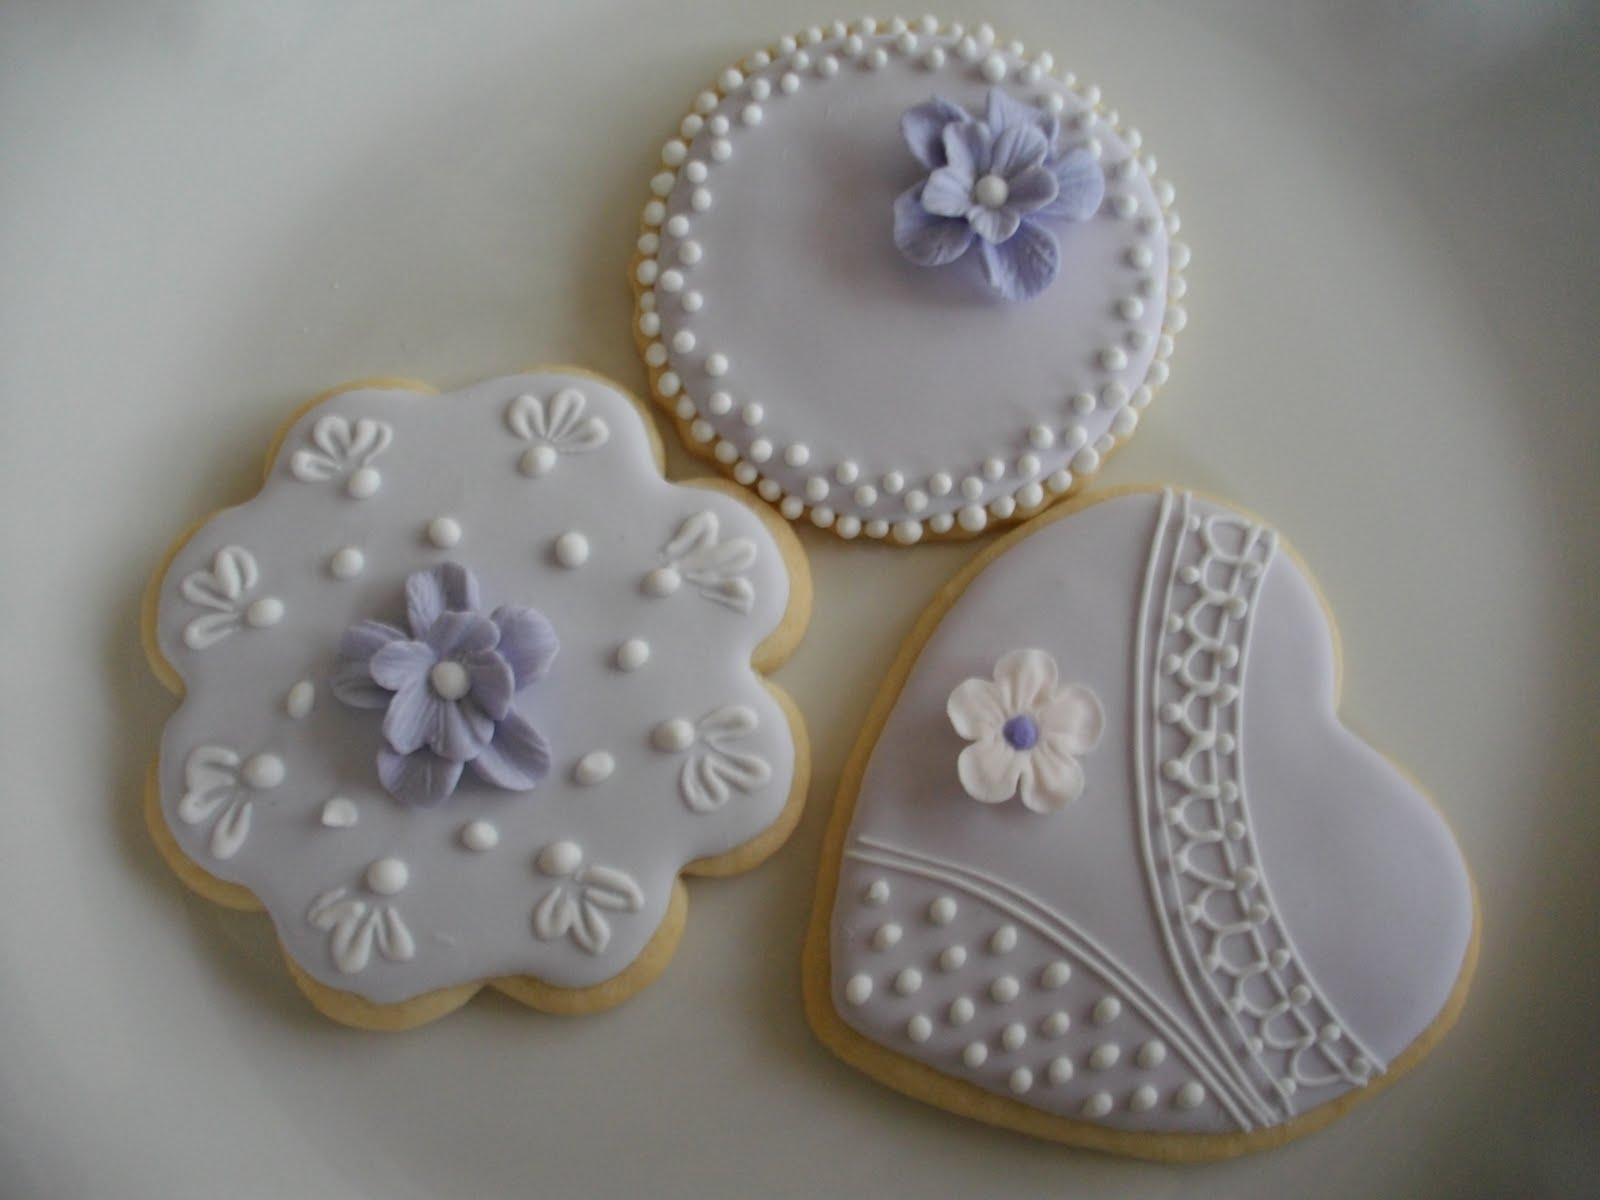 suzy 39 s sweet shoppe beautifully decorated sugar cookies